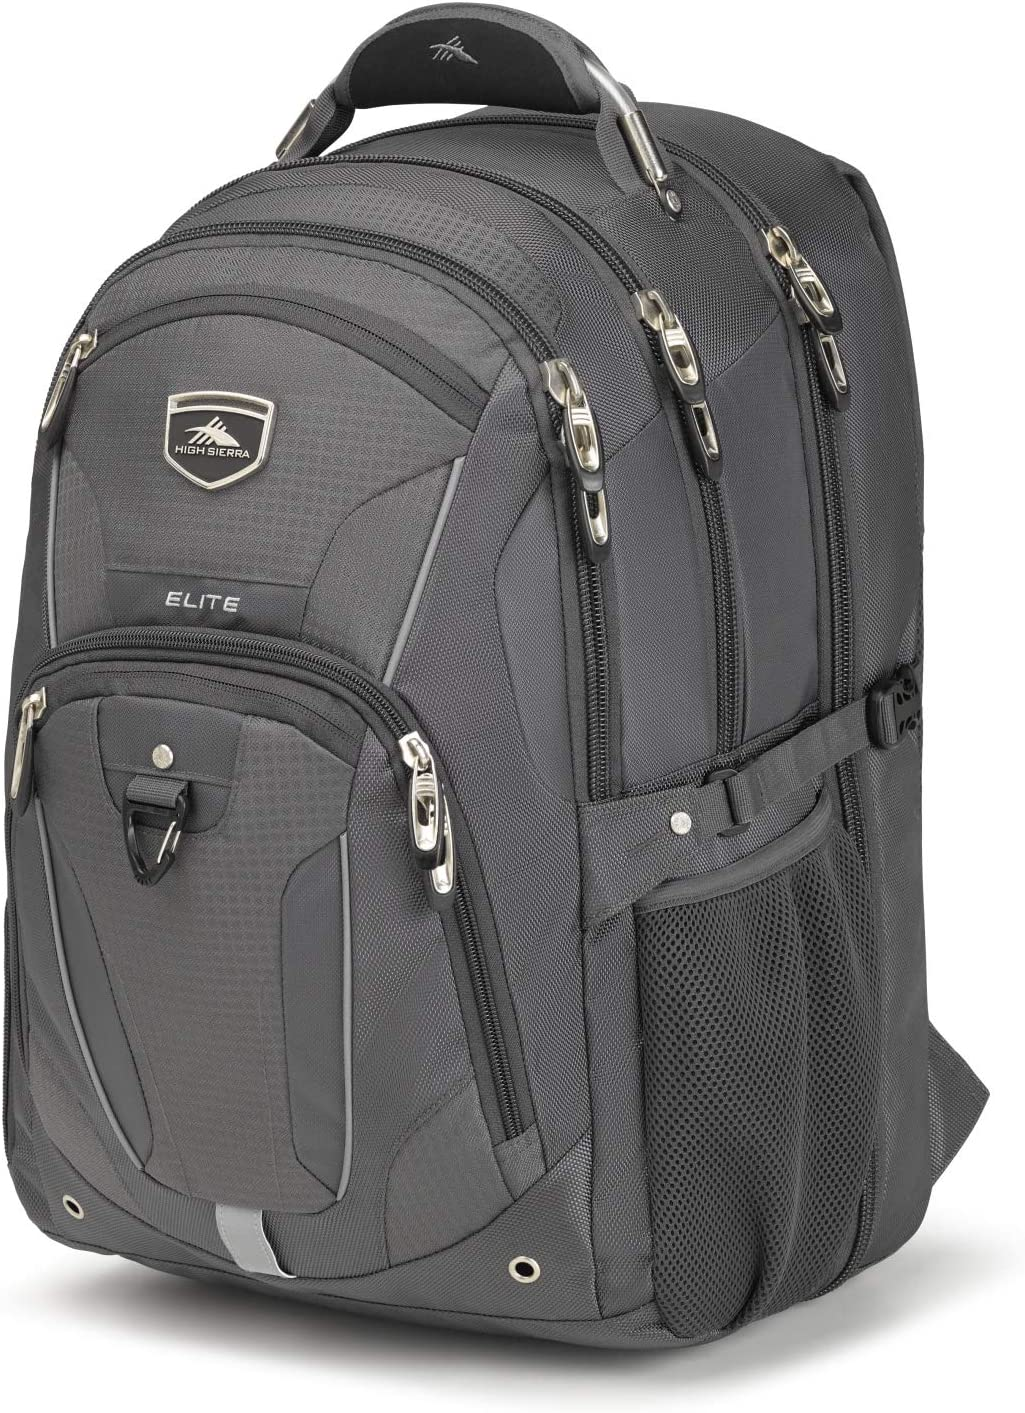 High Sierra Elite TSA-Friendly Laptop Backpack - Ideal for High School and College Students - Fits Most 17-inch Laptop Models, Mercury